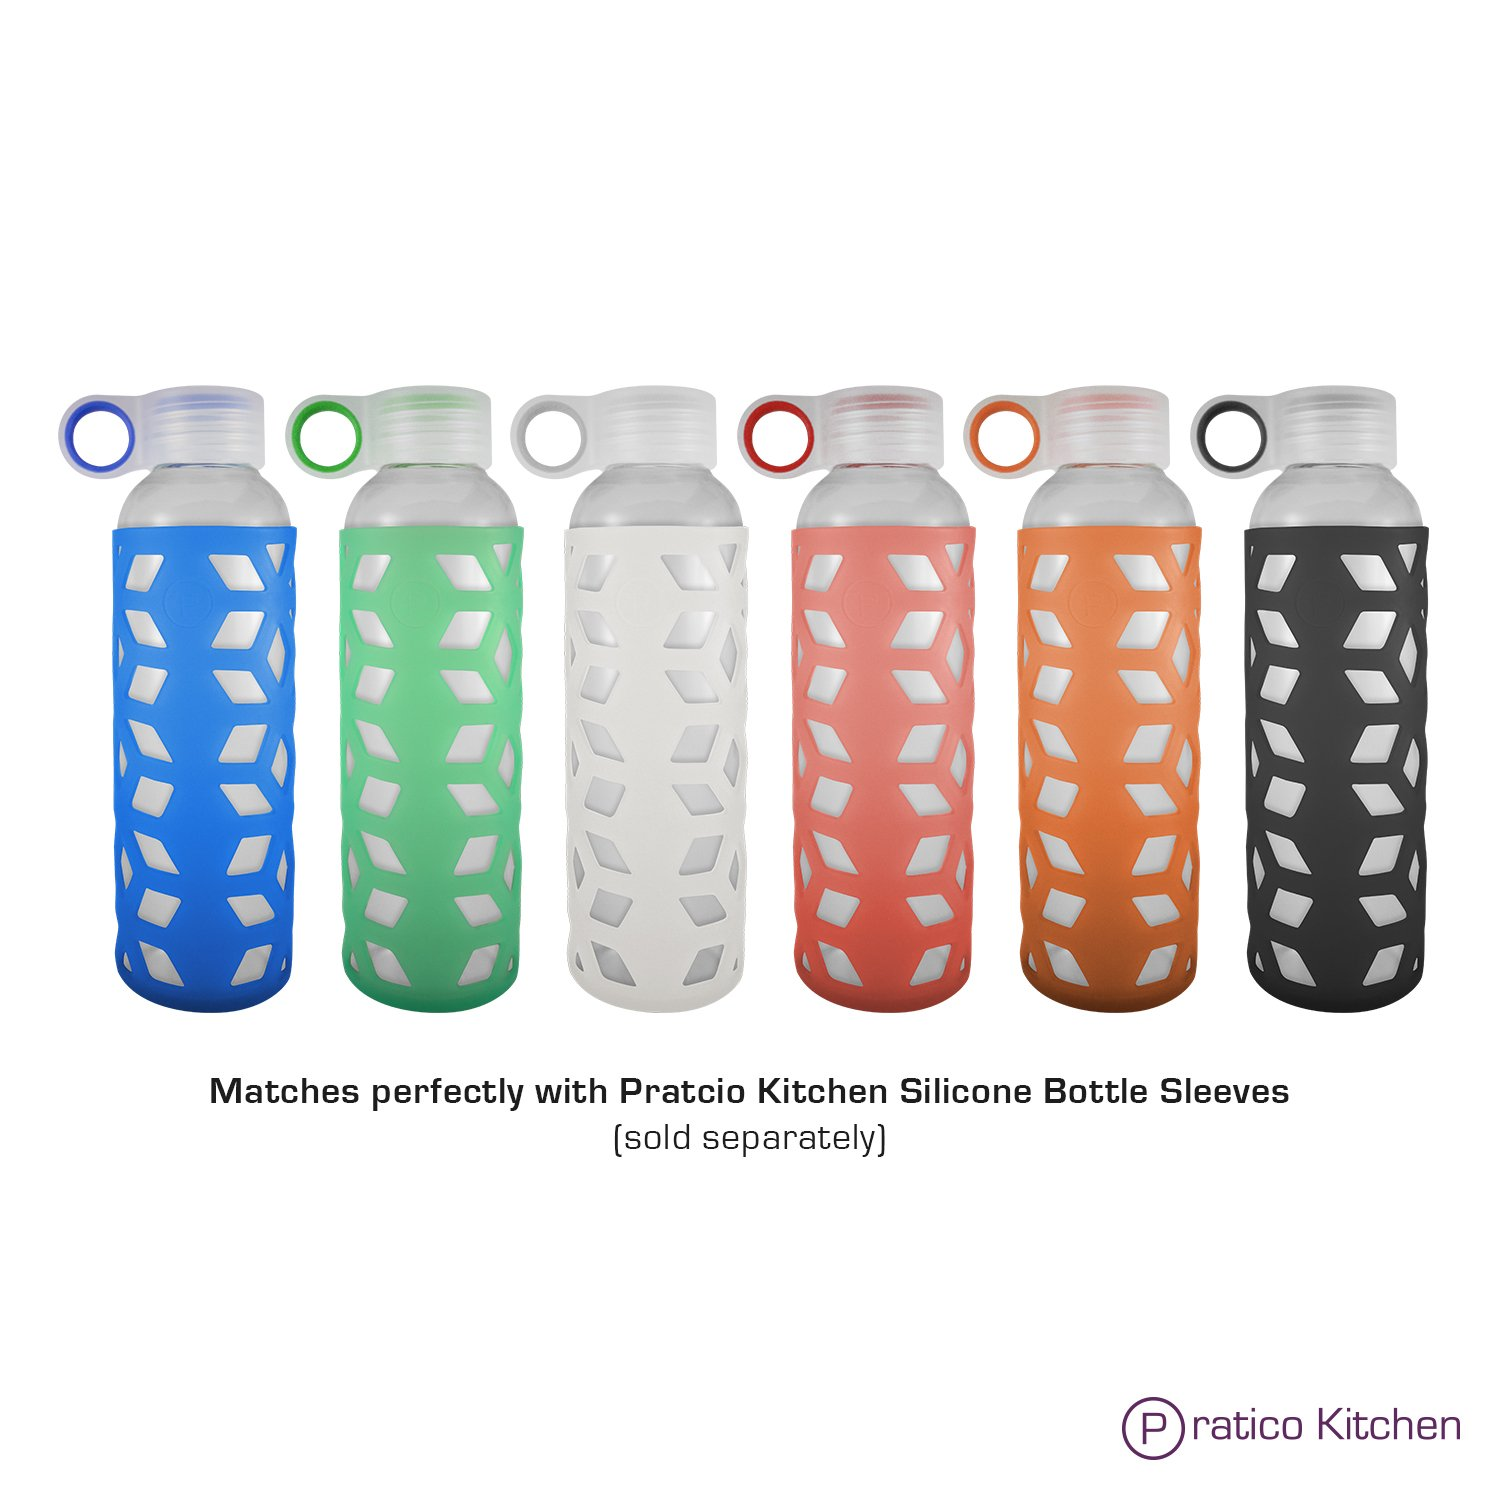 Pratico Kitchen 18oz Leak-Proof Glass Bottles, Juicing Containers, Water/Beverage Bottles - 6-Pack with Multi-Color Loop Caps by Pratico Kitchen (Image #7)